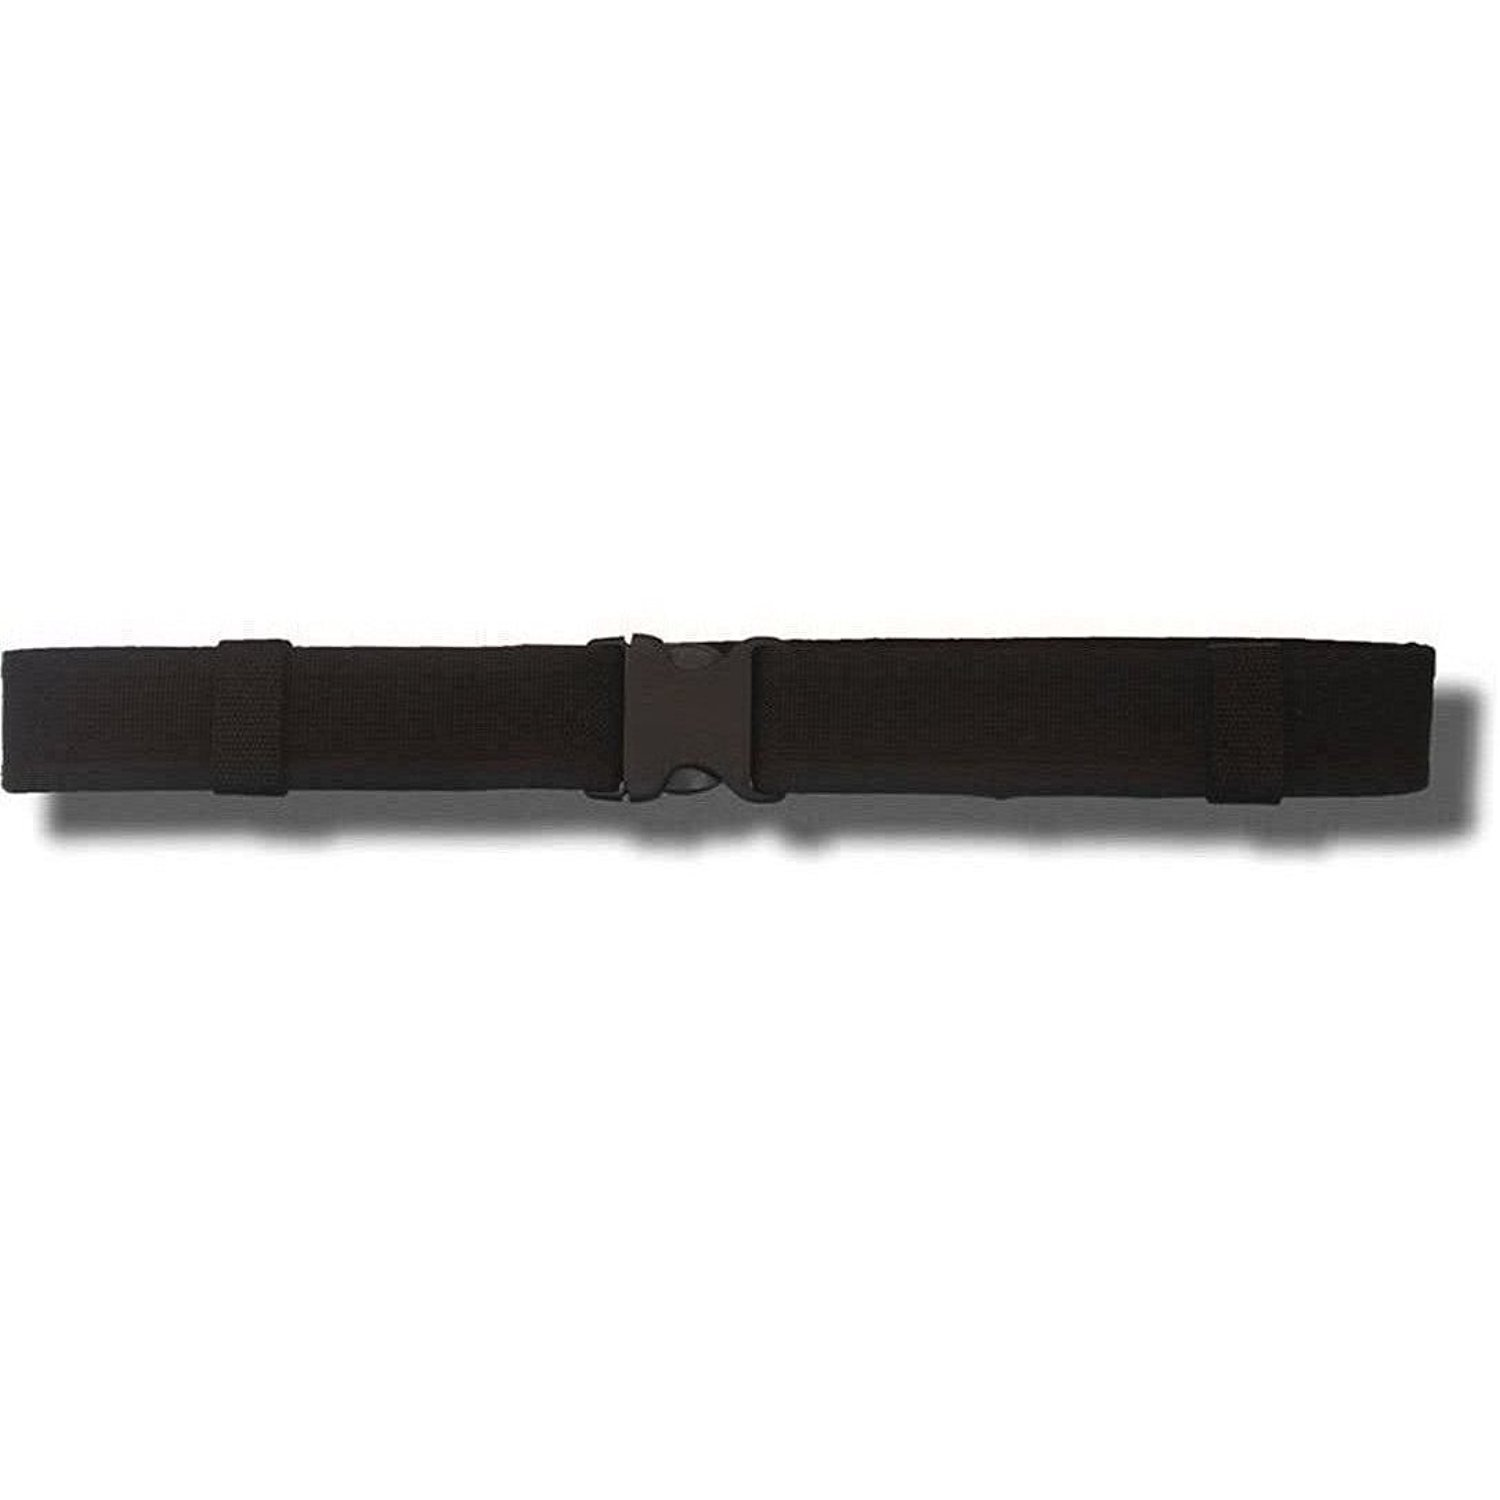 X-Large Tru-Spec Deluxe Duty Belt in Black